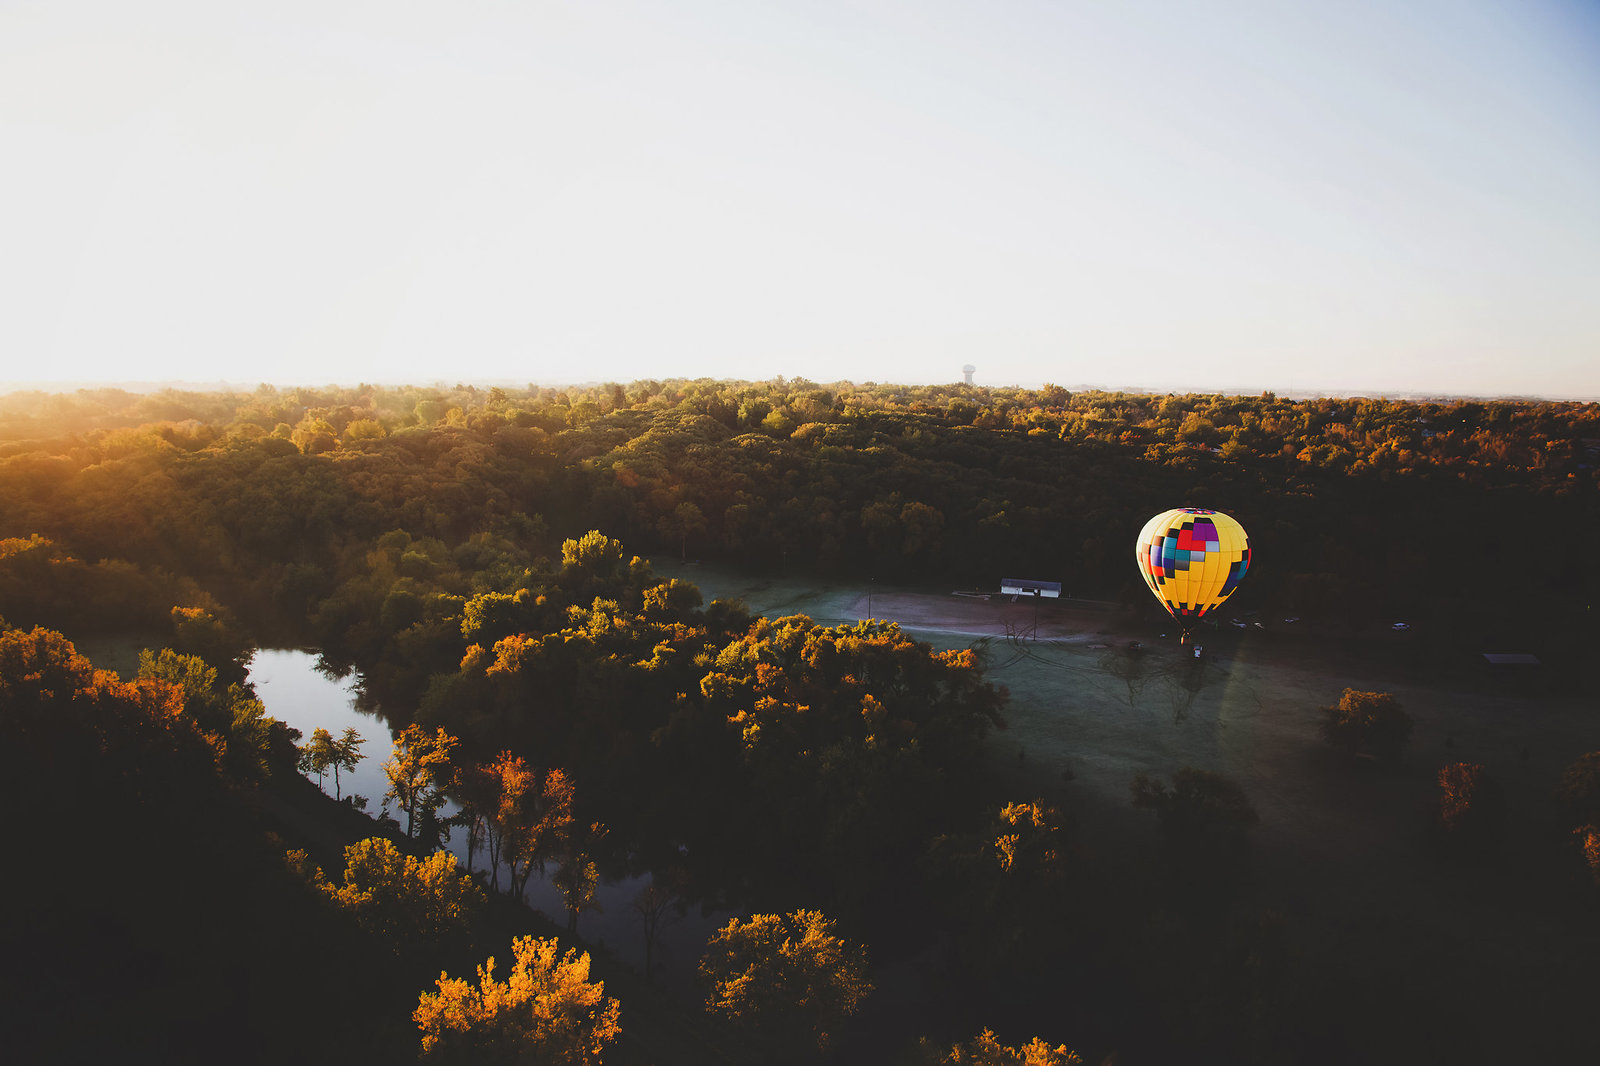 South Dakota sunrise from a hot air balloon